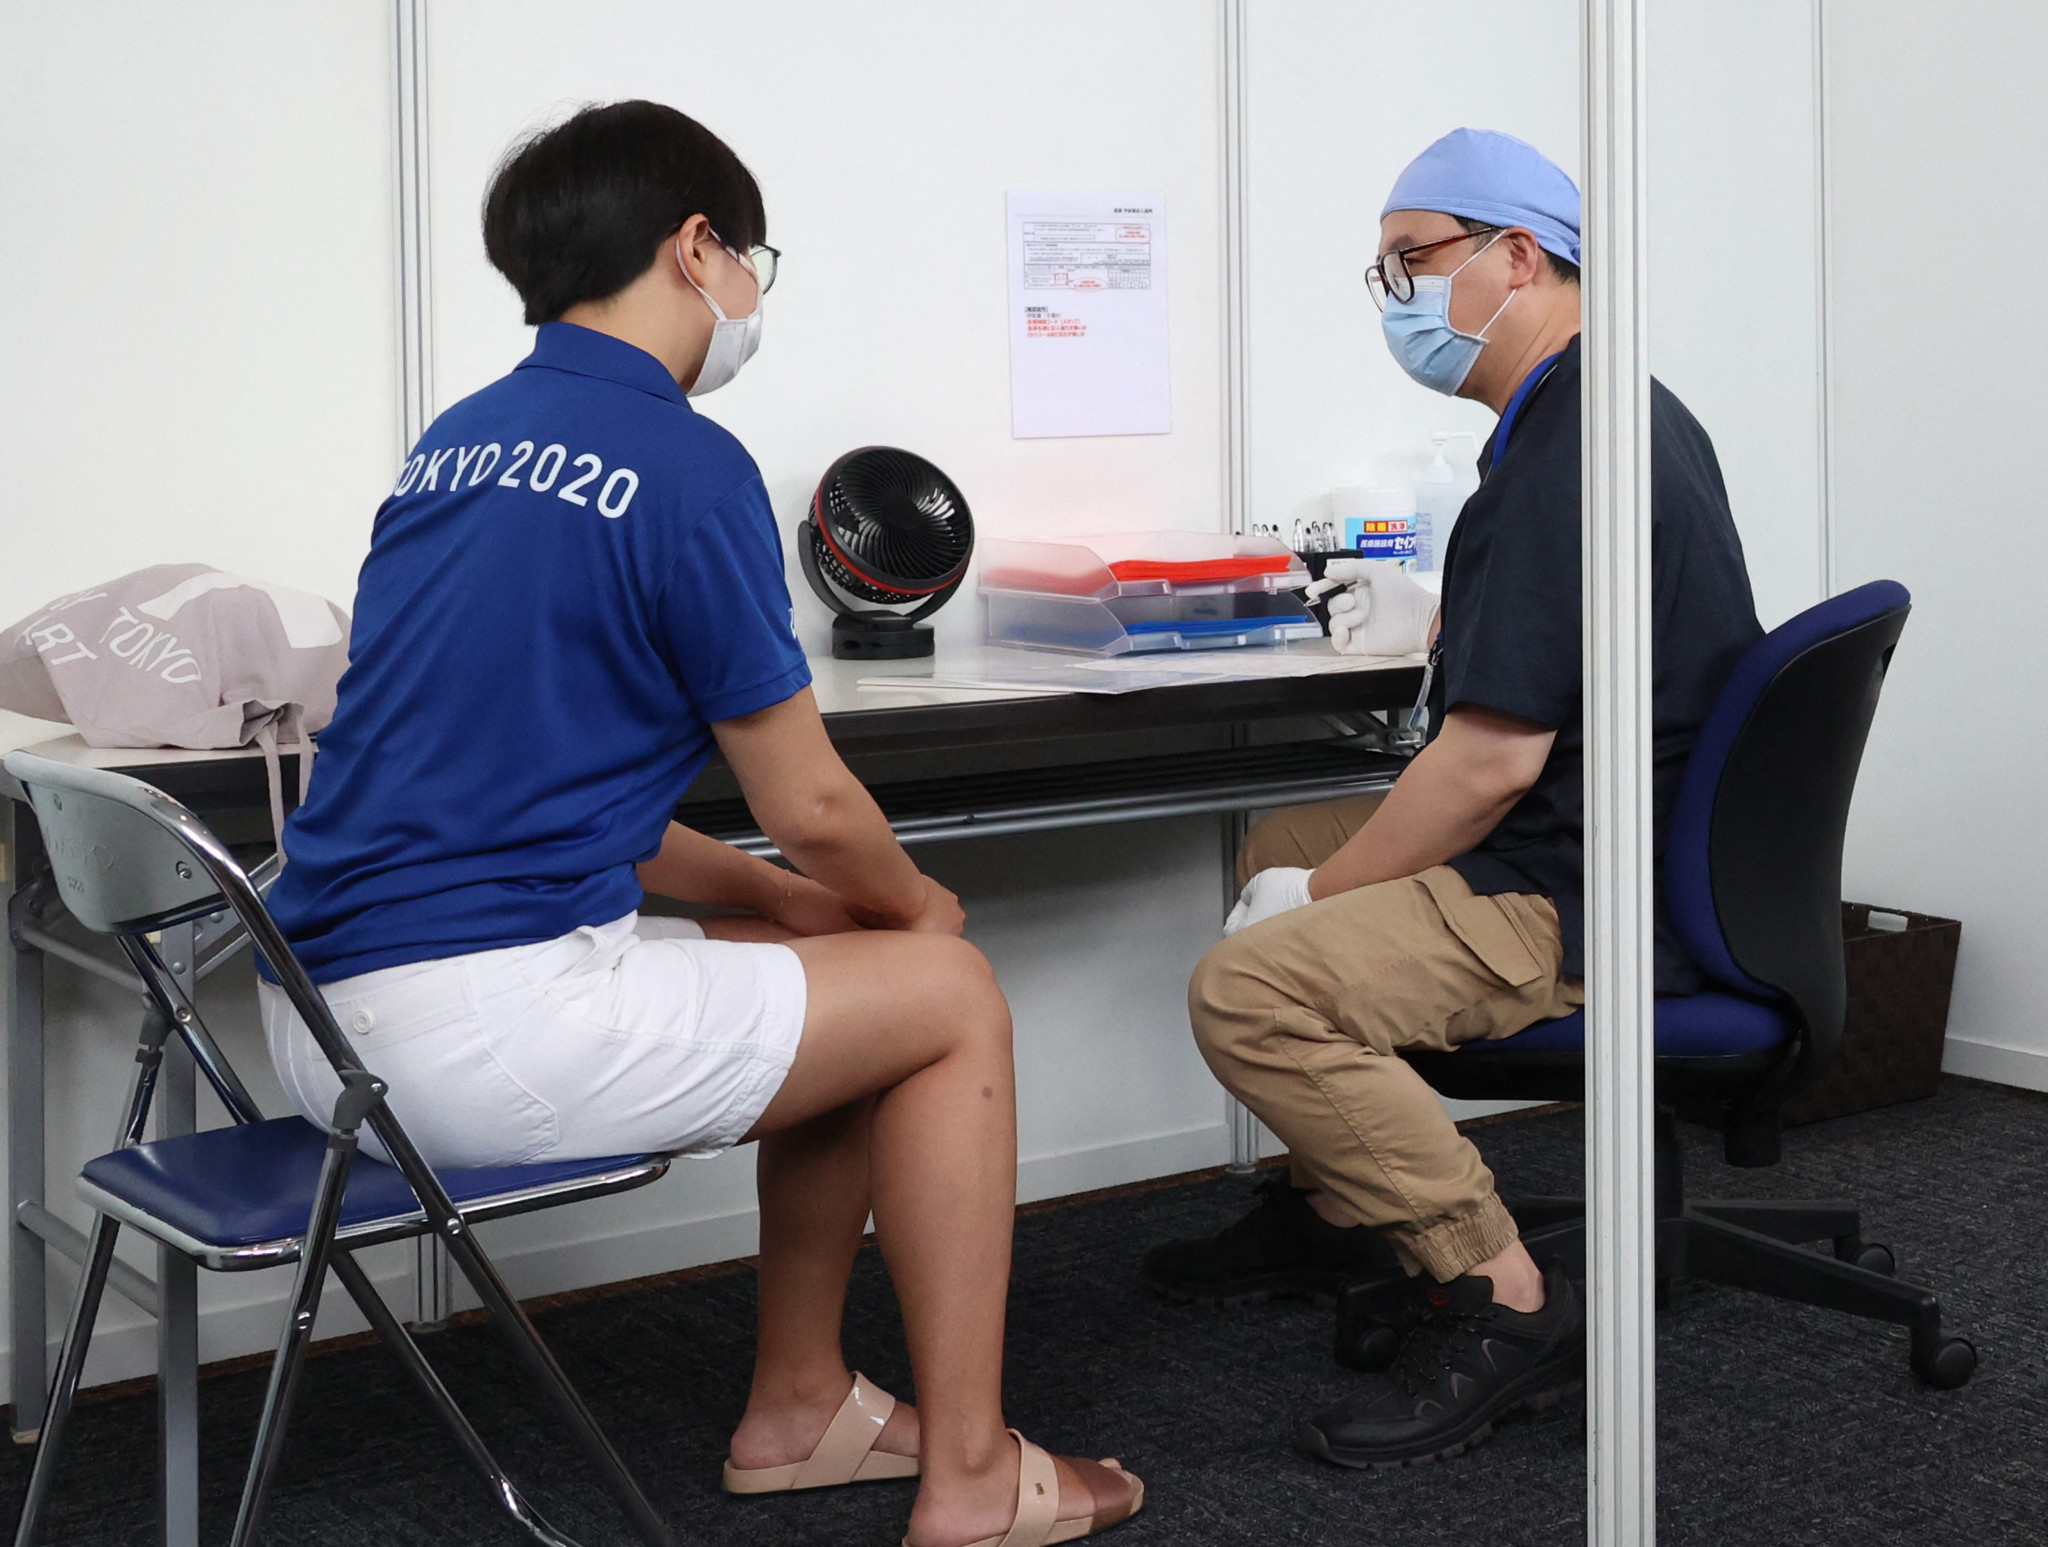 A total of 2,500 workers are expected to receive a dose of the COVID-19 vaccine per day ahead of the Games ©Getty Images